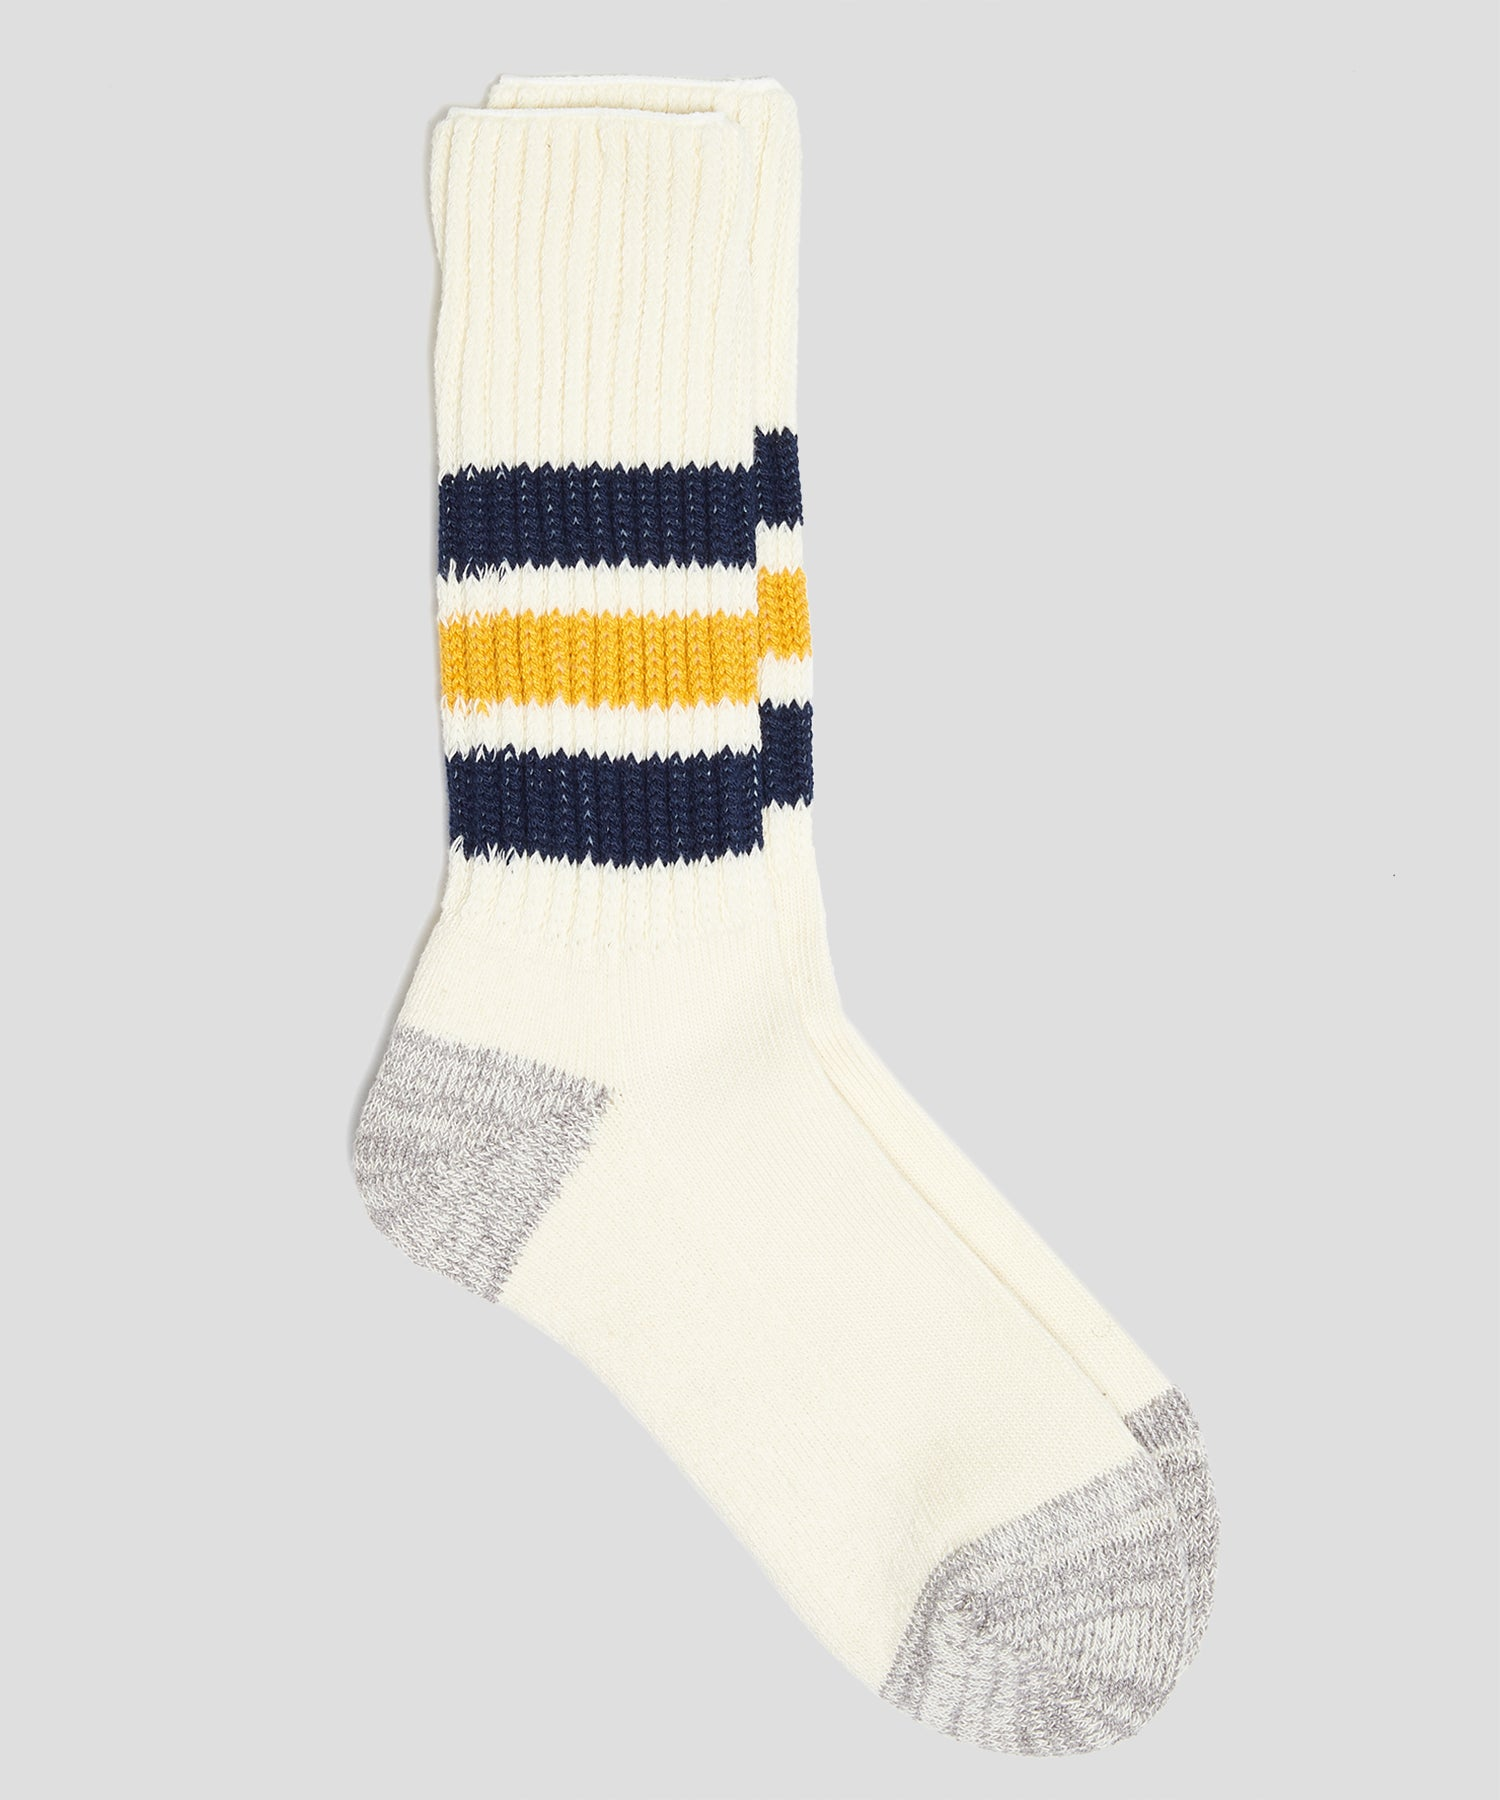 RoToTo Coarse Ribbed Old School Crew Socks in Navy